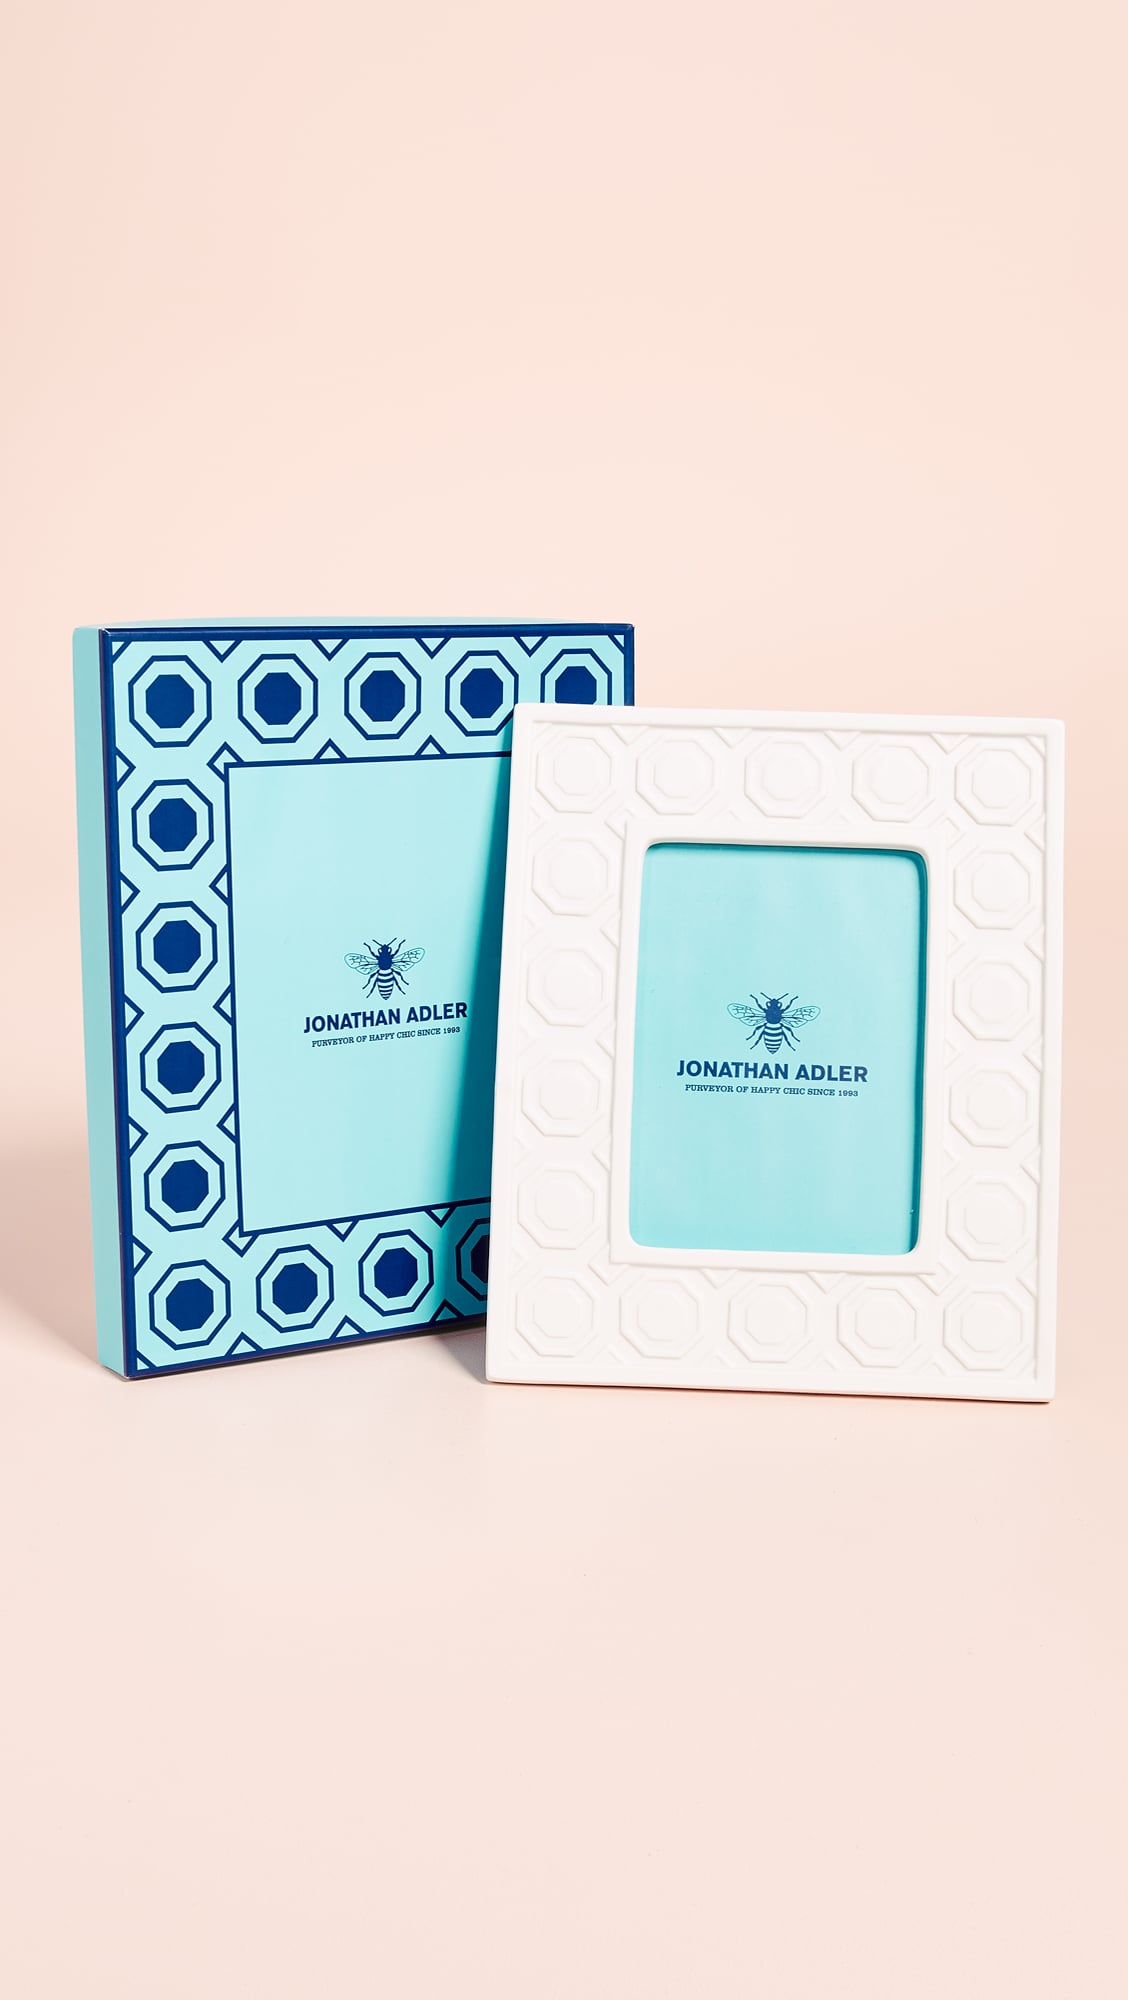 Jonathan Adler Charade Moulding 5x7 Frame Trust Us These Are The